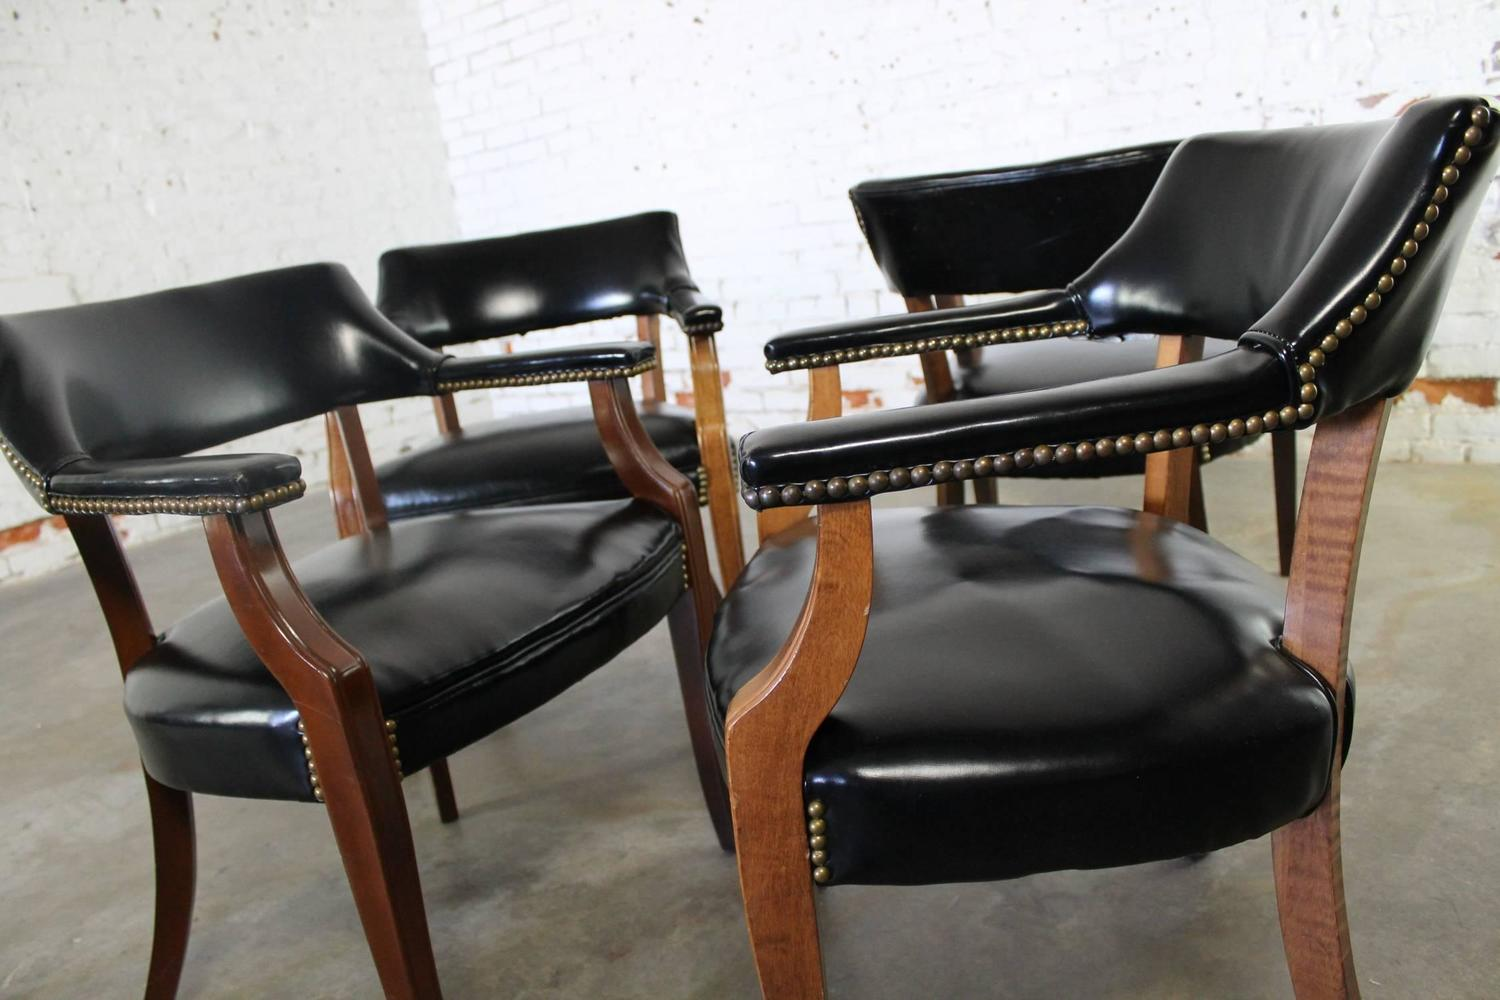 Leather Dining Chairs With Nailheads Vintage Walnut And Black Faux Leather Captain Chairs With